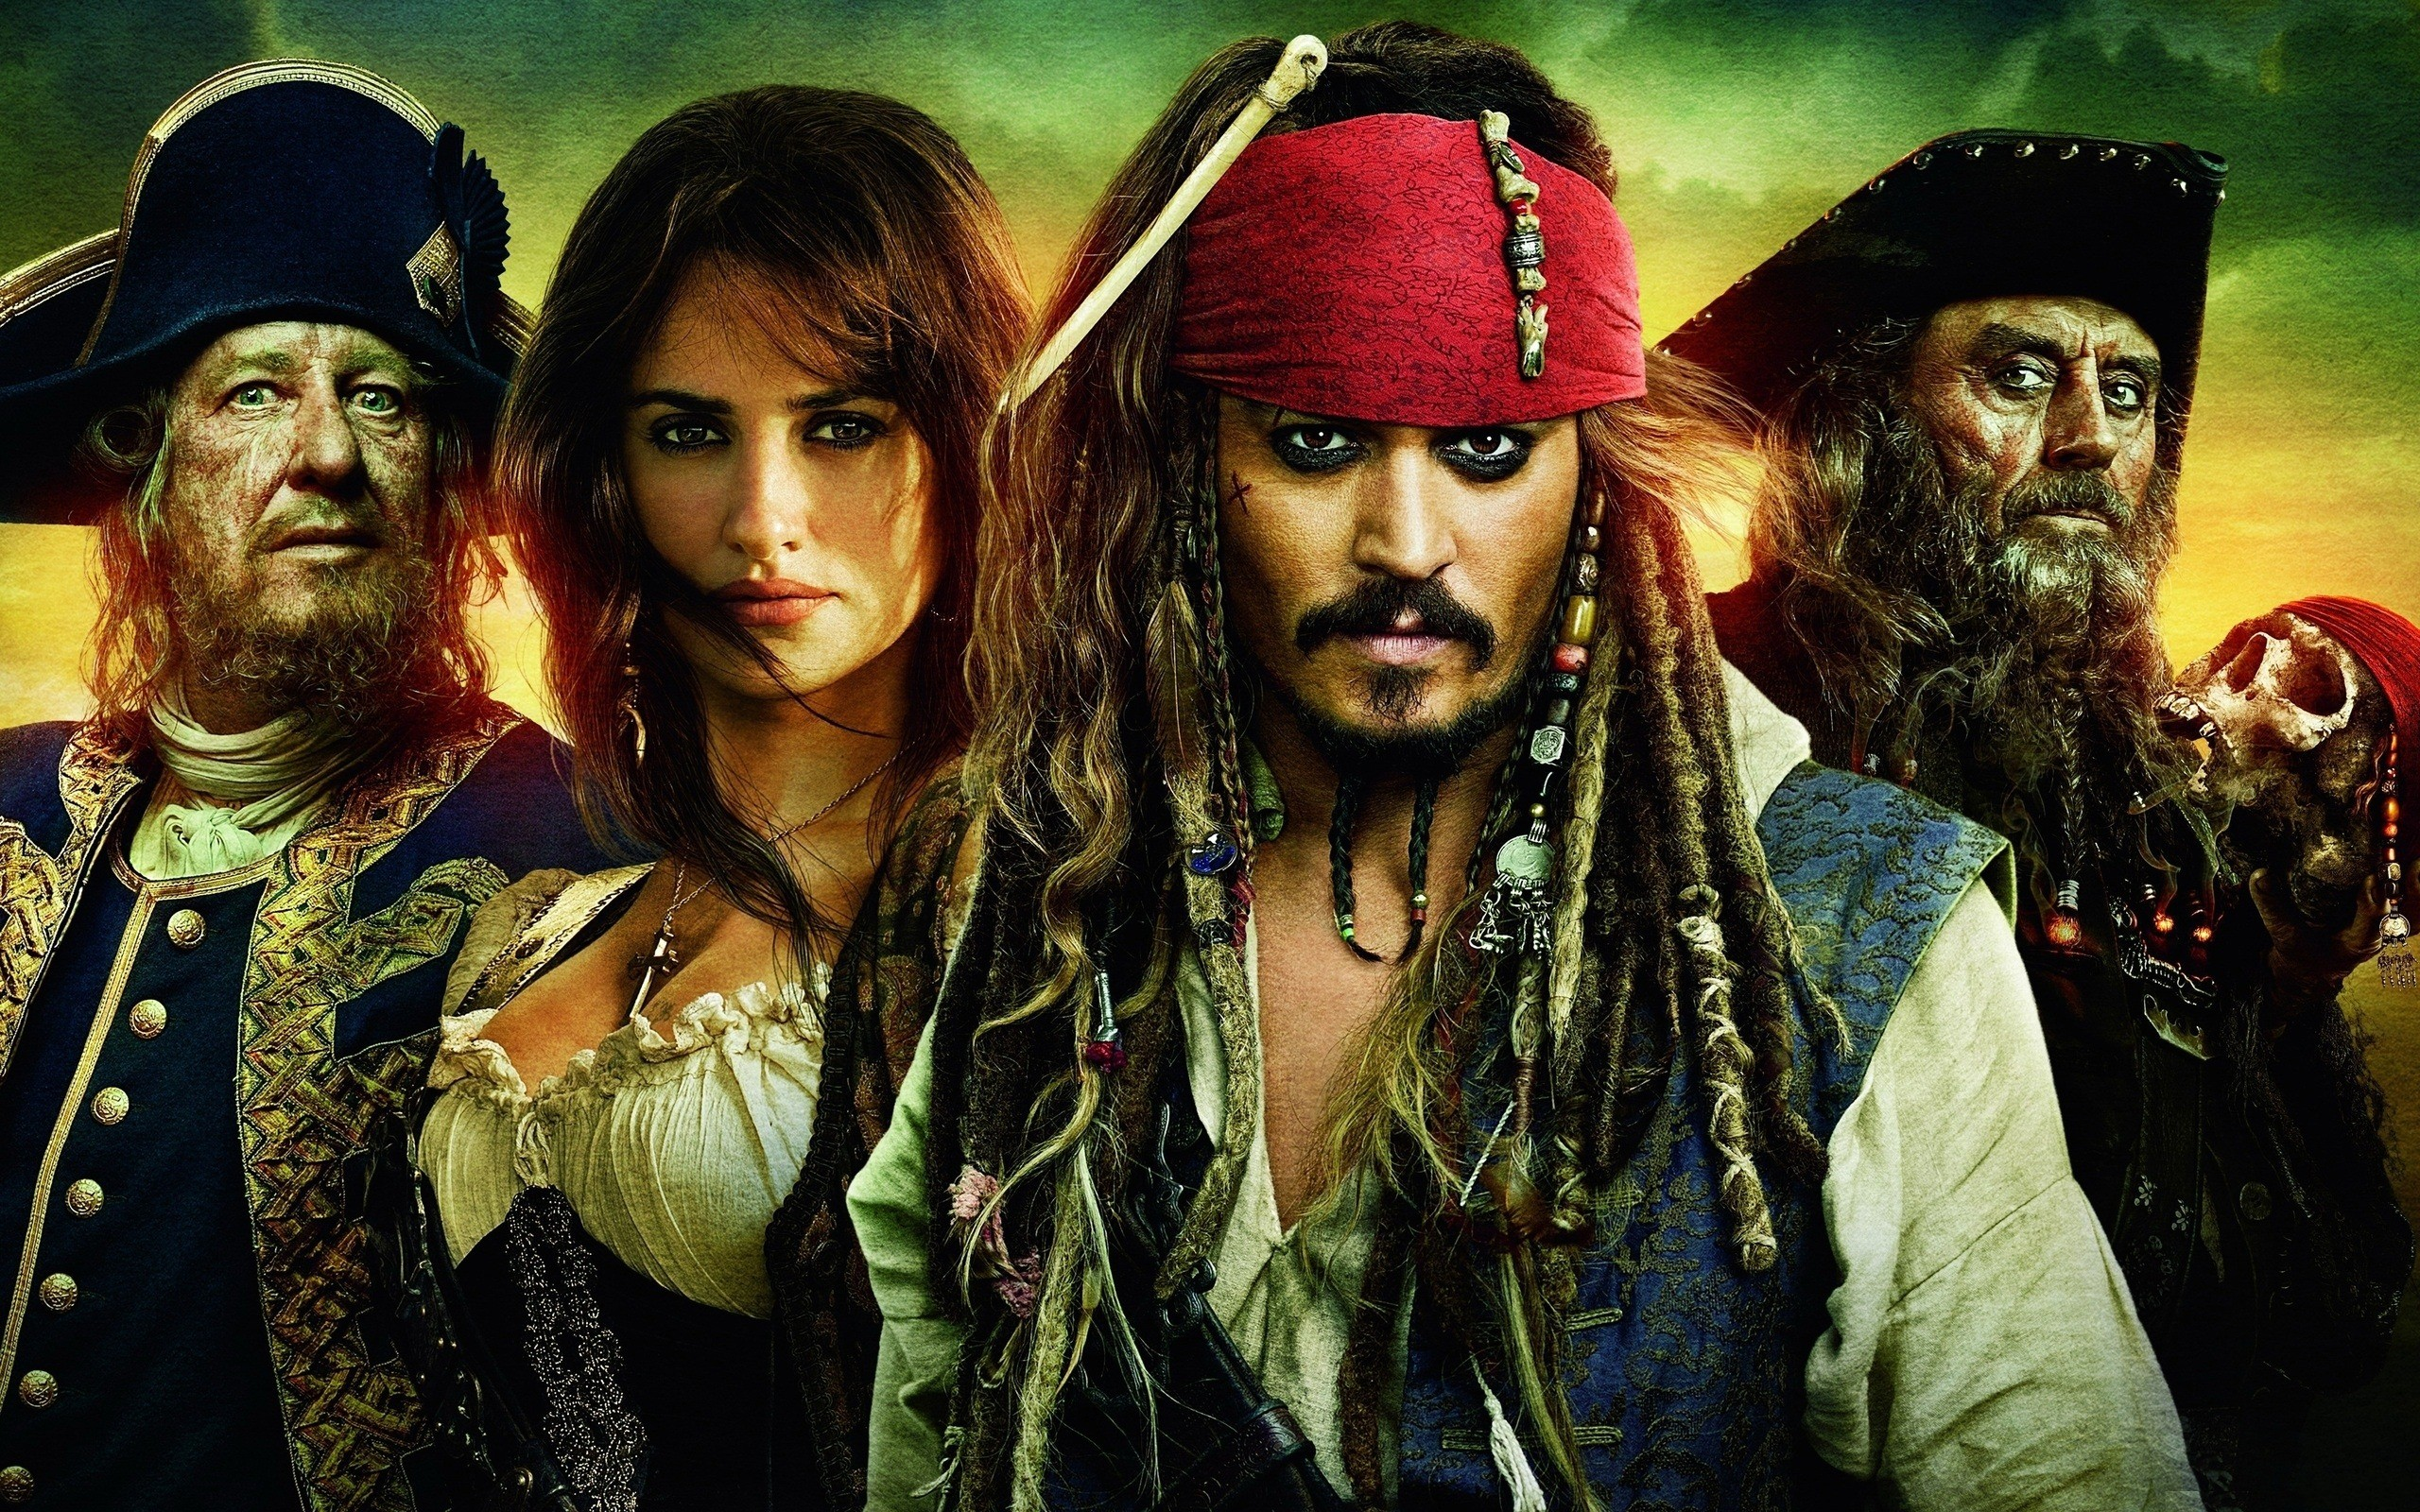 pirates of the caribbean on stranger tides full movie